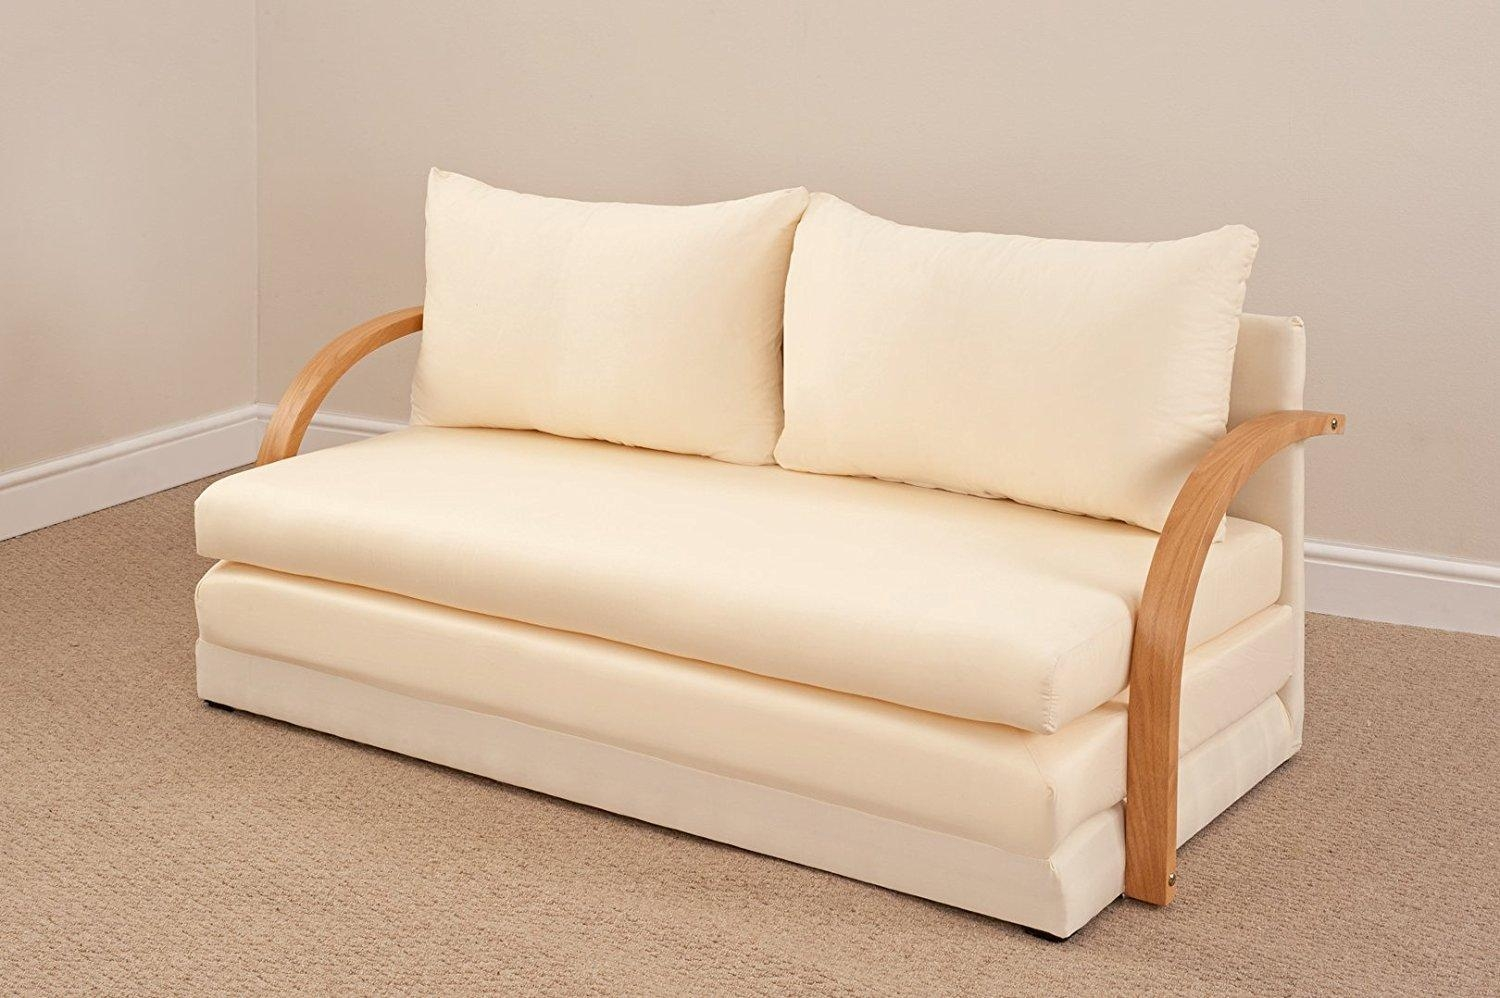 Cute Natural Beige Fold Out Double Foam Sofa Bed Most Comfortable With Most Comfortable Sofabed (Image 8 of 22)